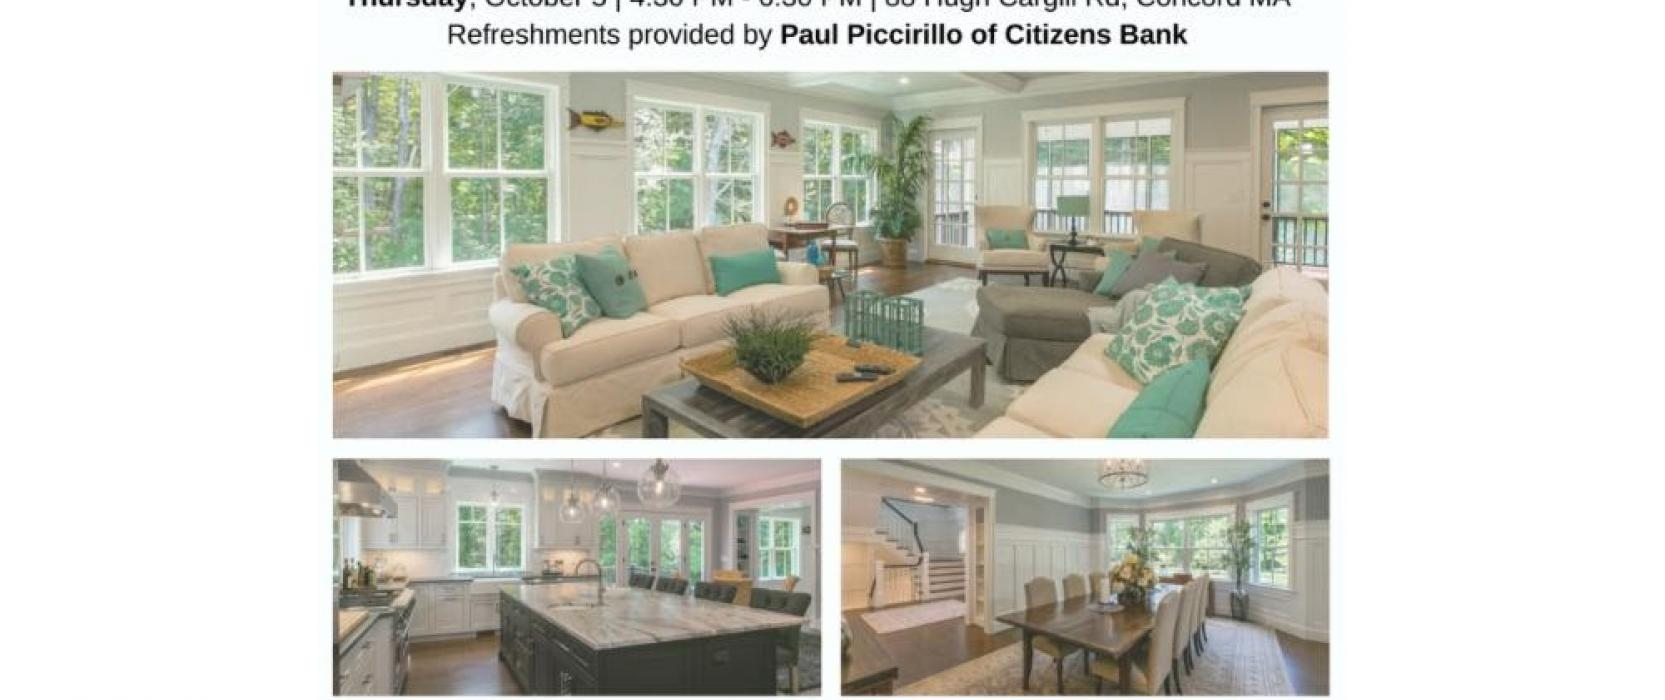 open house real estate in Concord, MA